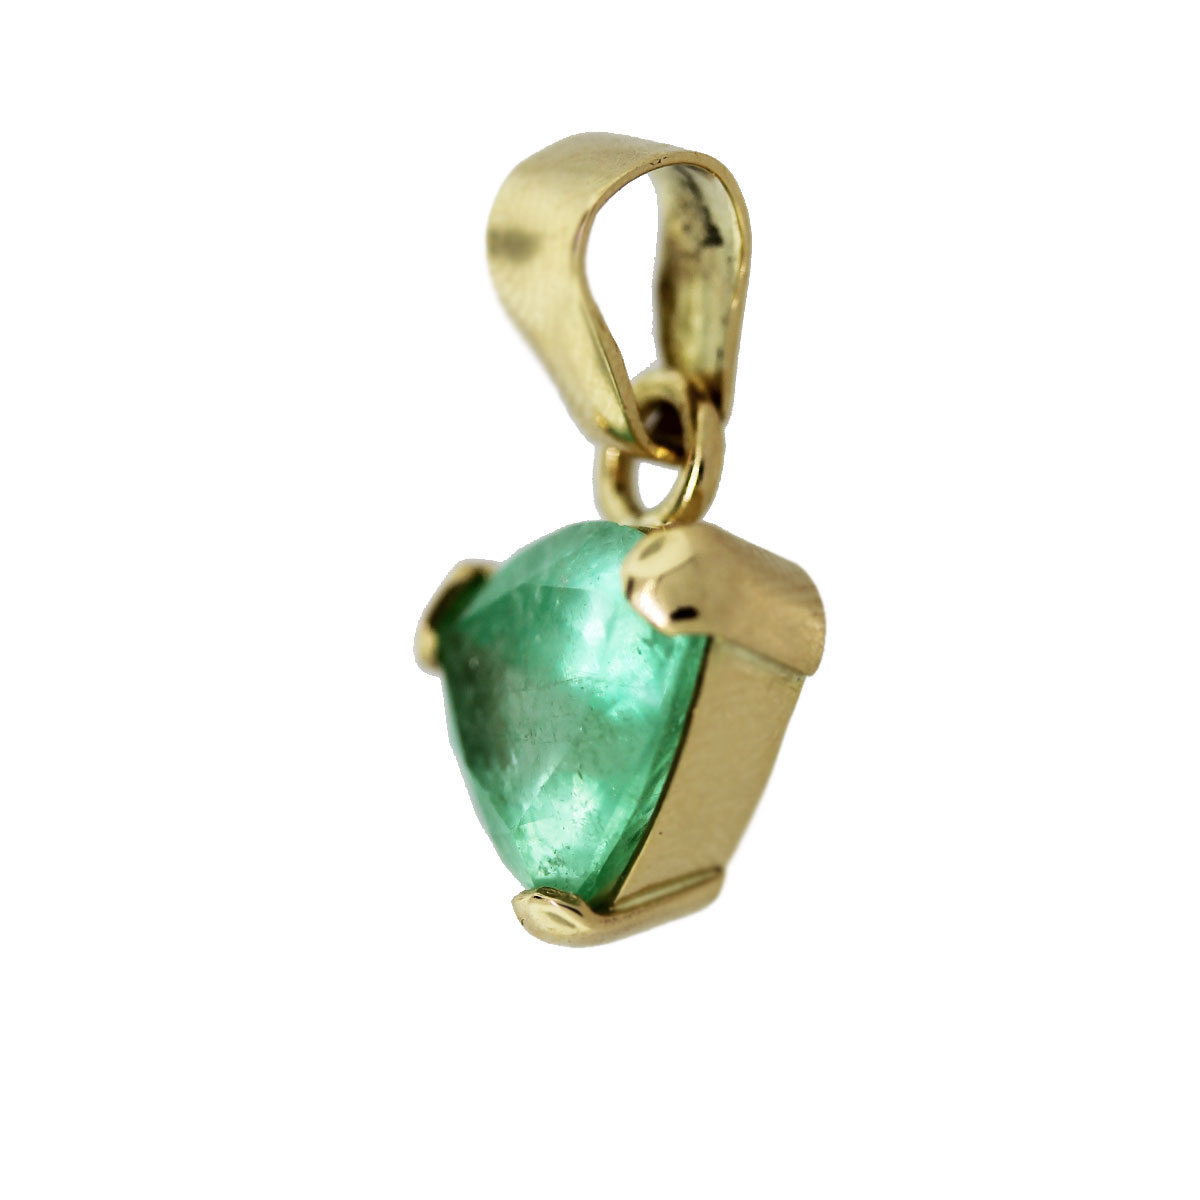 Side View of Pendant